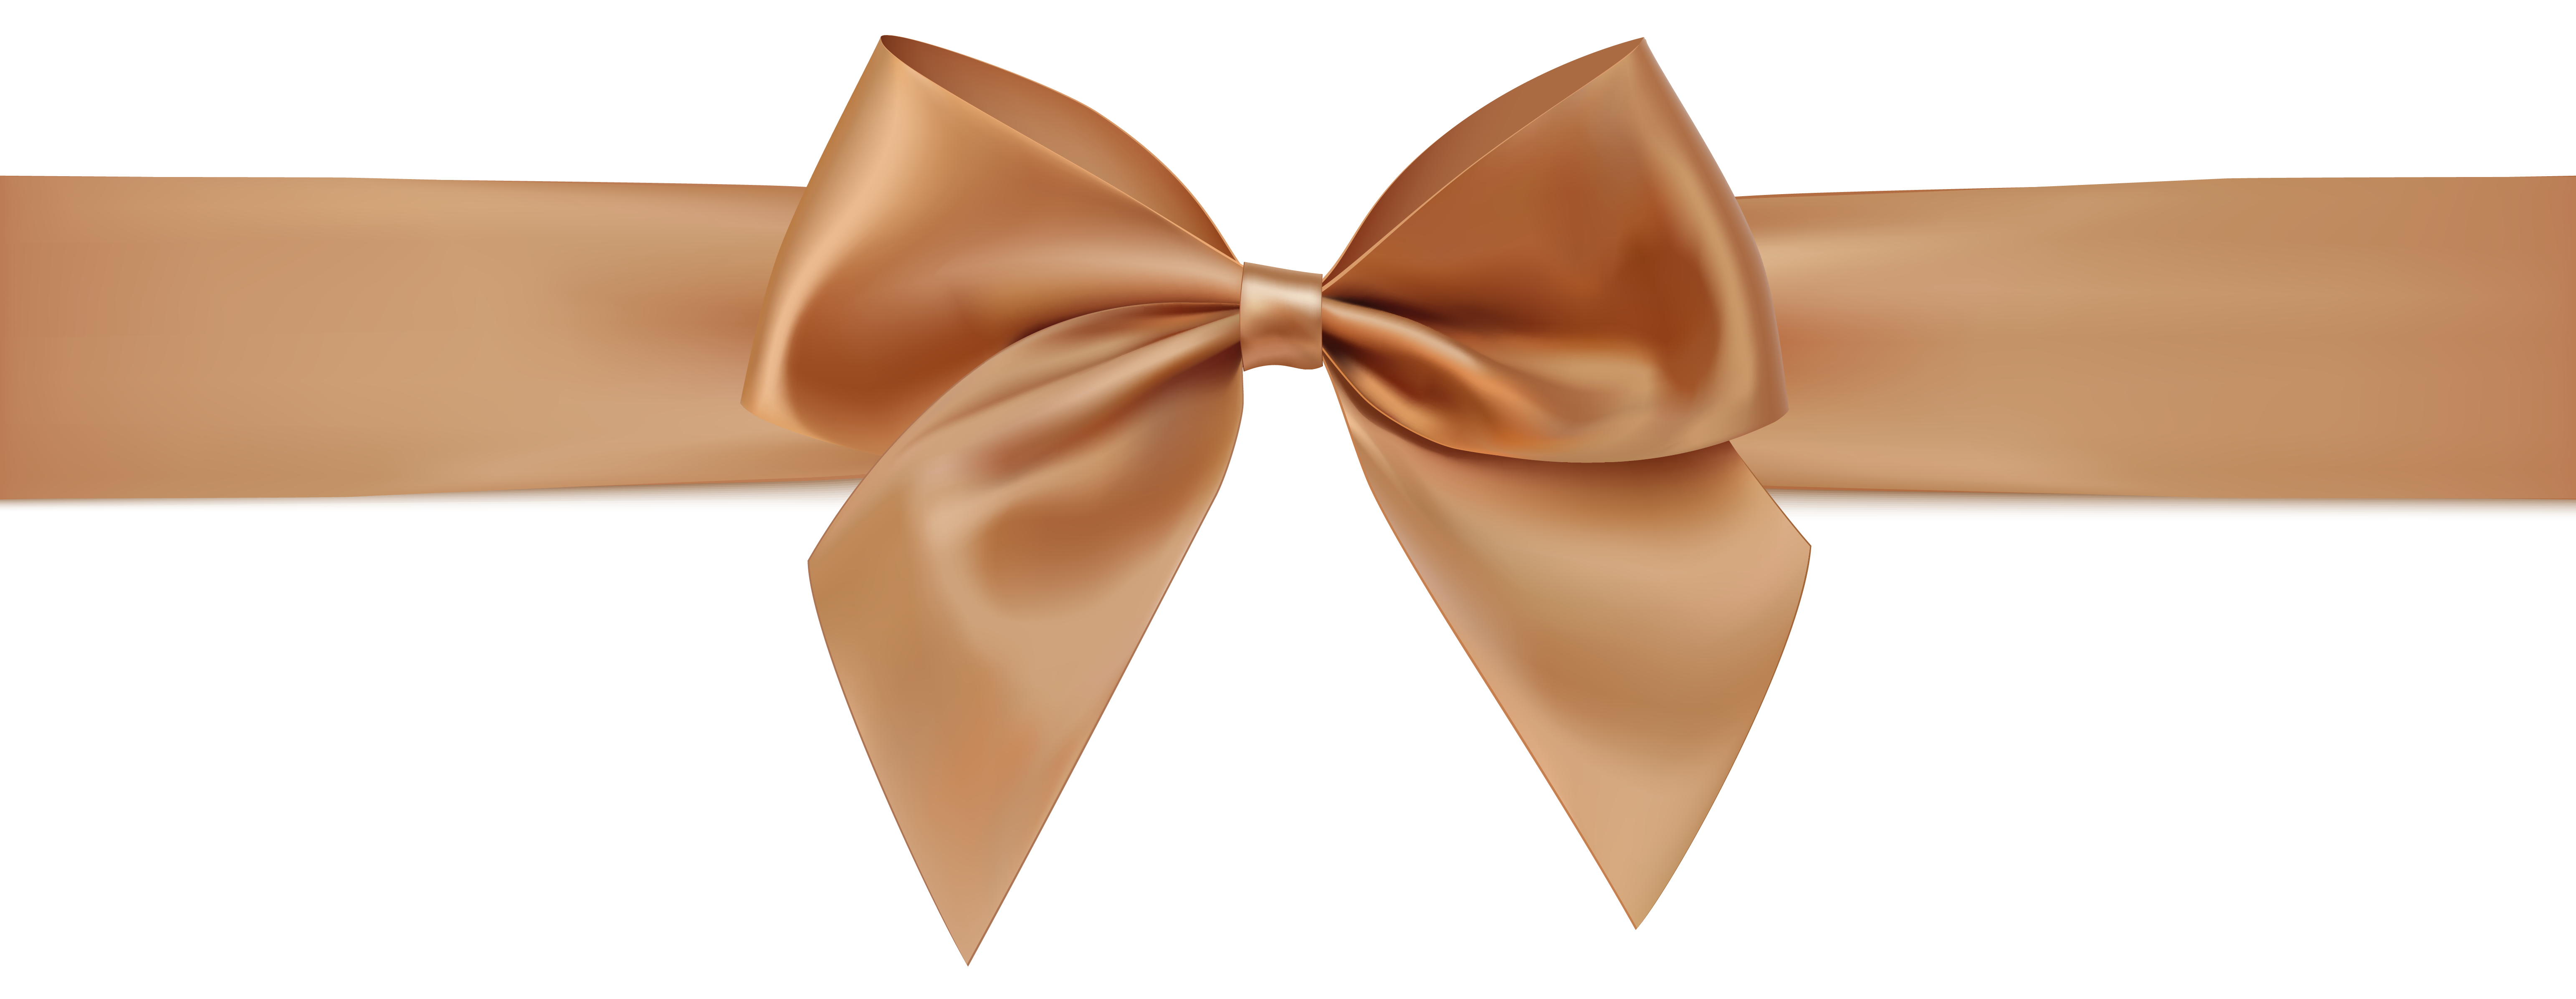 Tie clipart orange ribbon Ribbon PNG Clipart Ribbon Brown